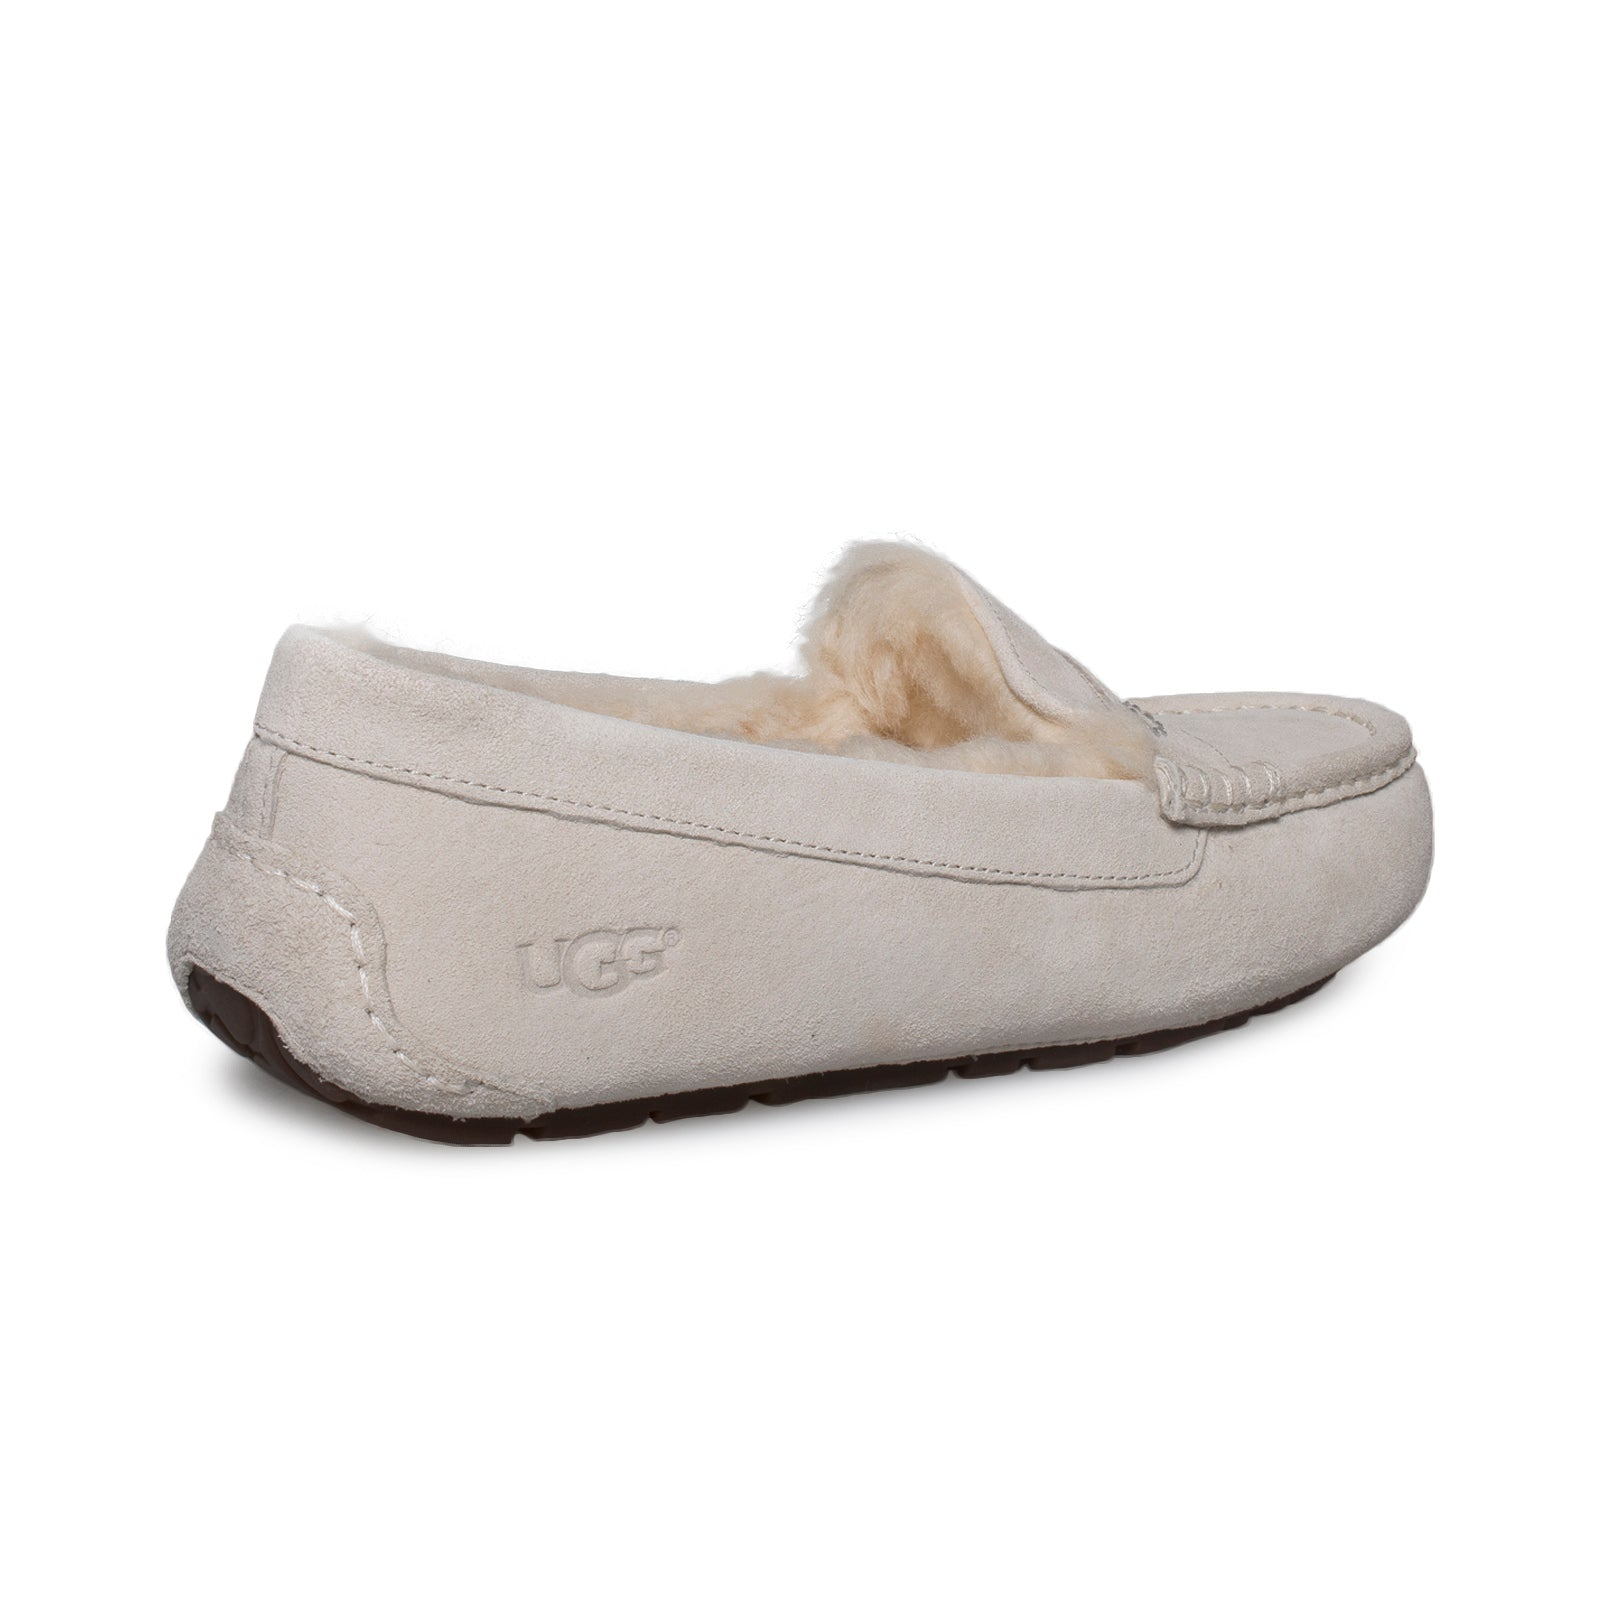 97ddc605a46 UGG Violette Sparkle Fresh Snow Slippers